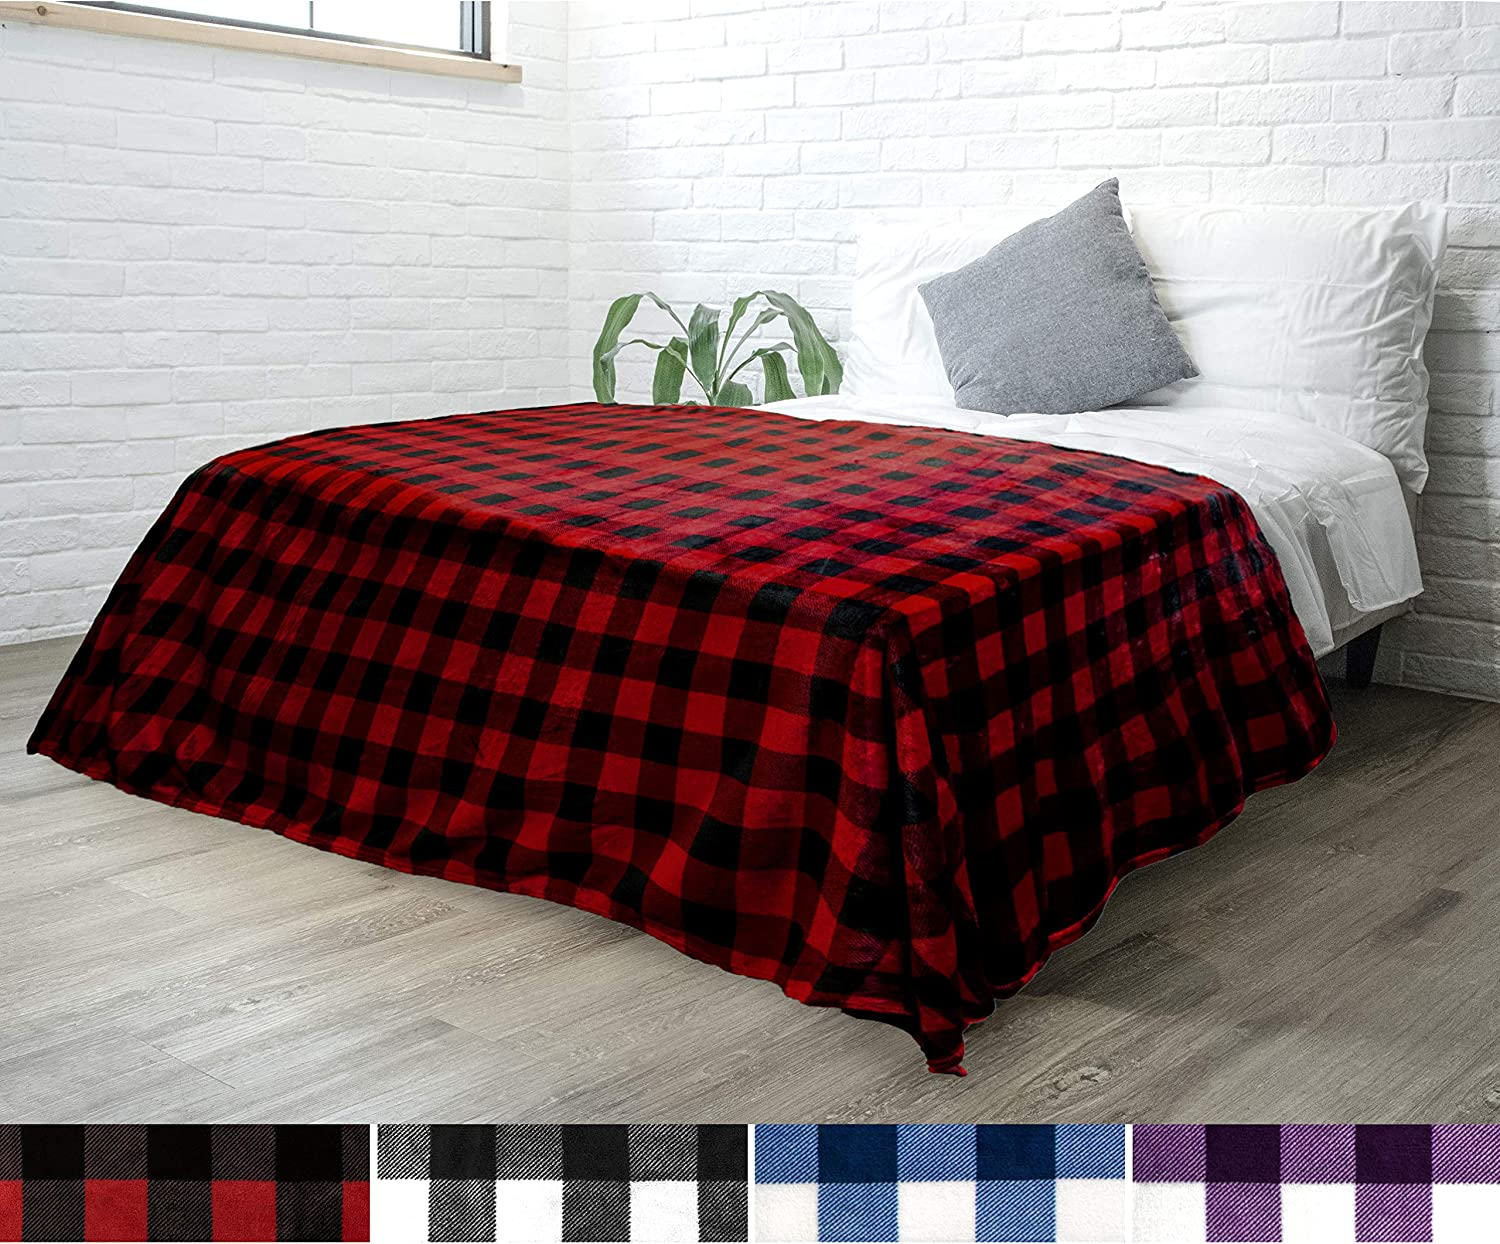 PAVILIA Flannel Fleece Throw Blanket for Sofa Couch Bed | Super Soft Velvet Plaid Pattern Checkered Decorative Throw | Warm Cozy Lightweight Microfiber | 60 x 80 Inches Plaid Red/Black